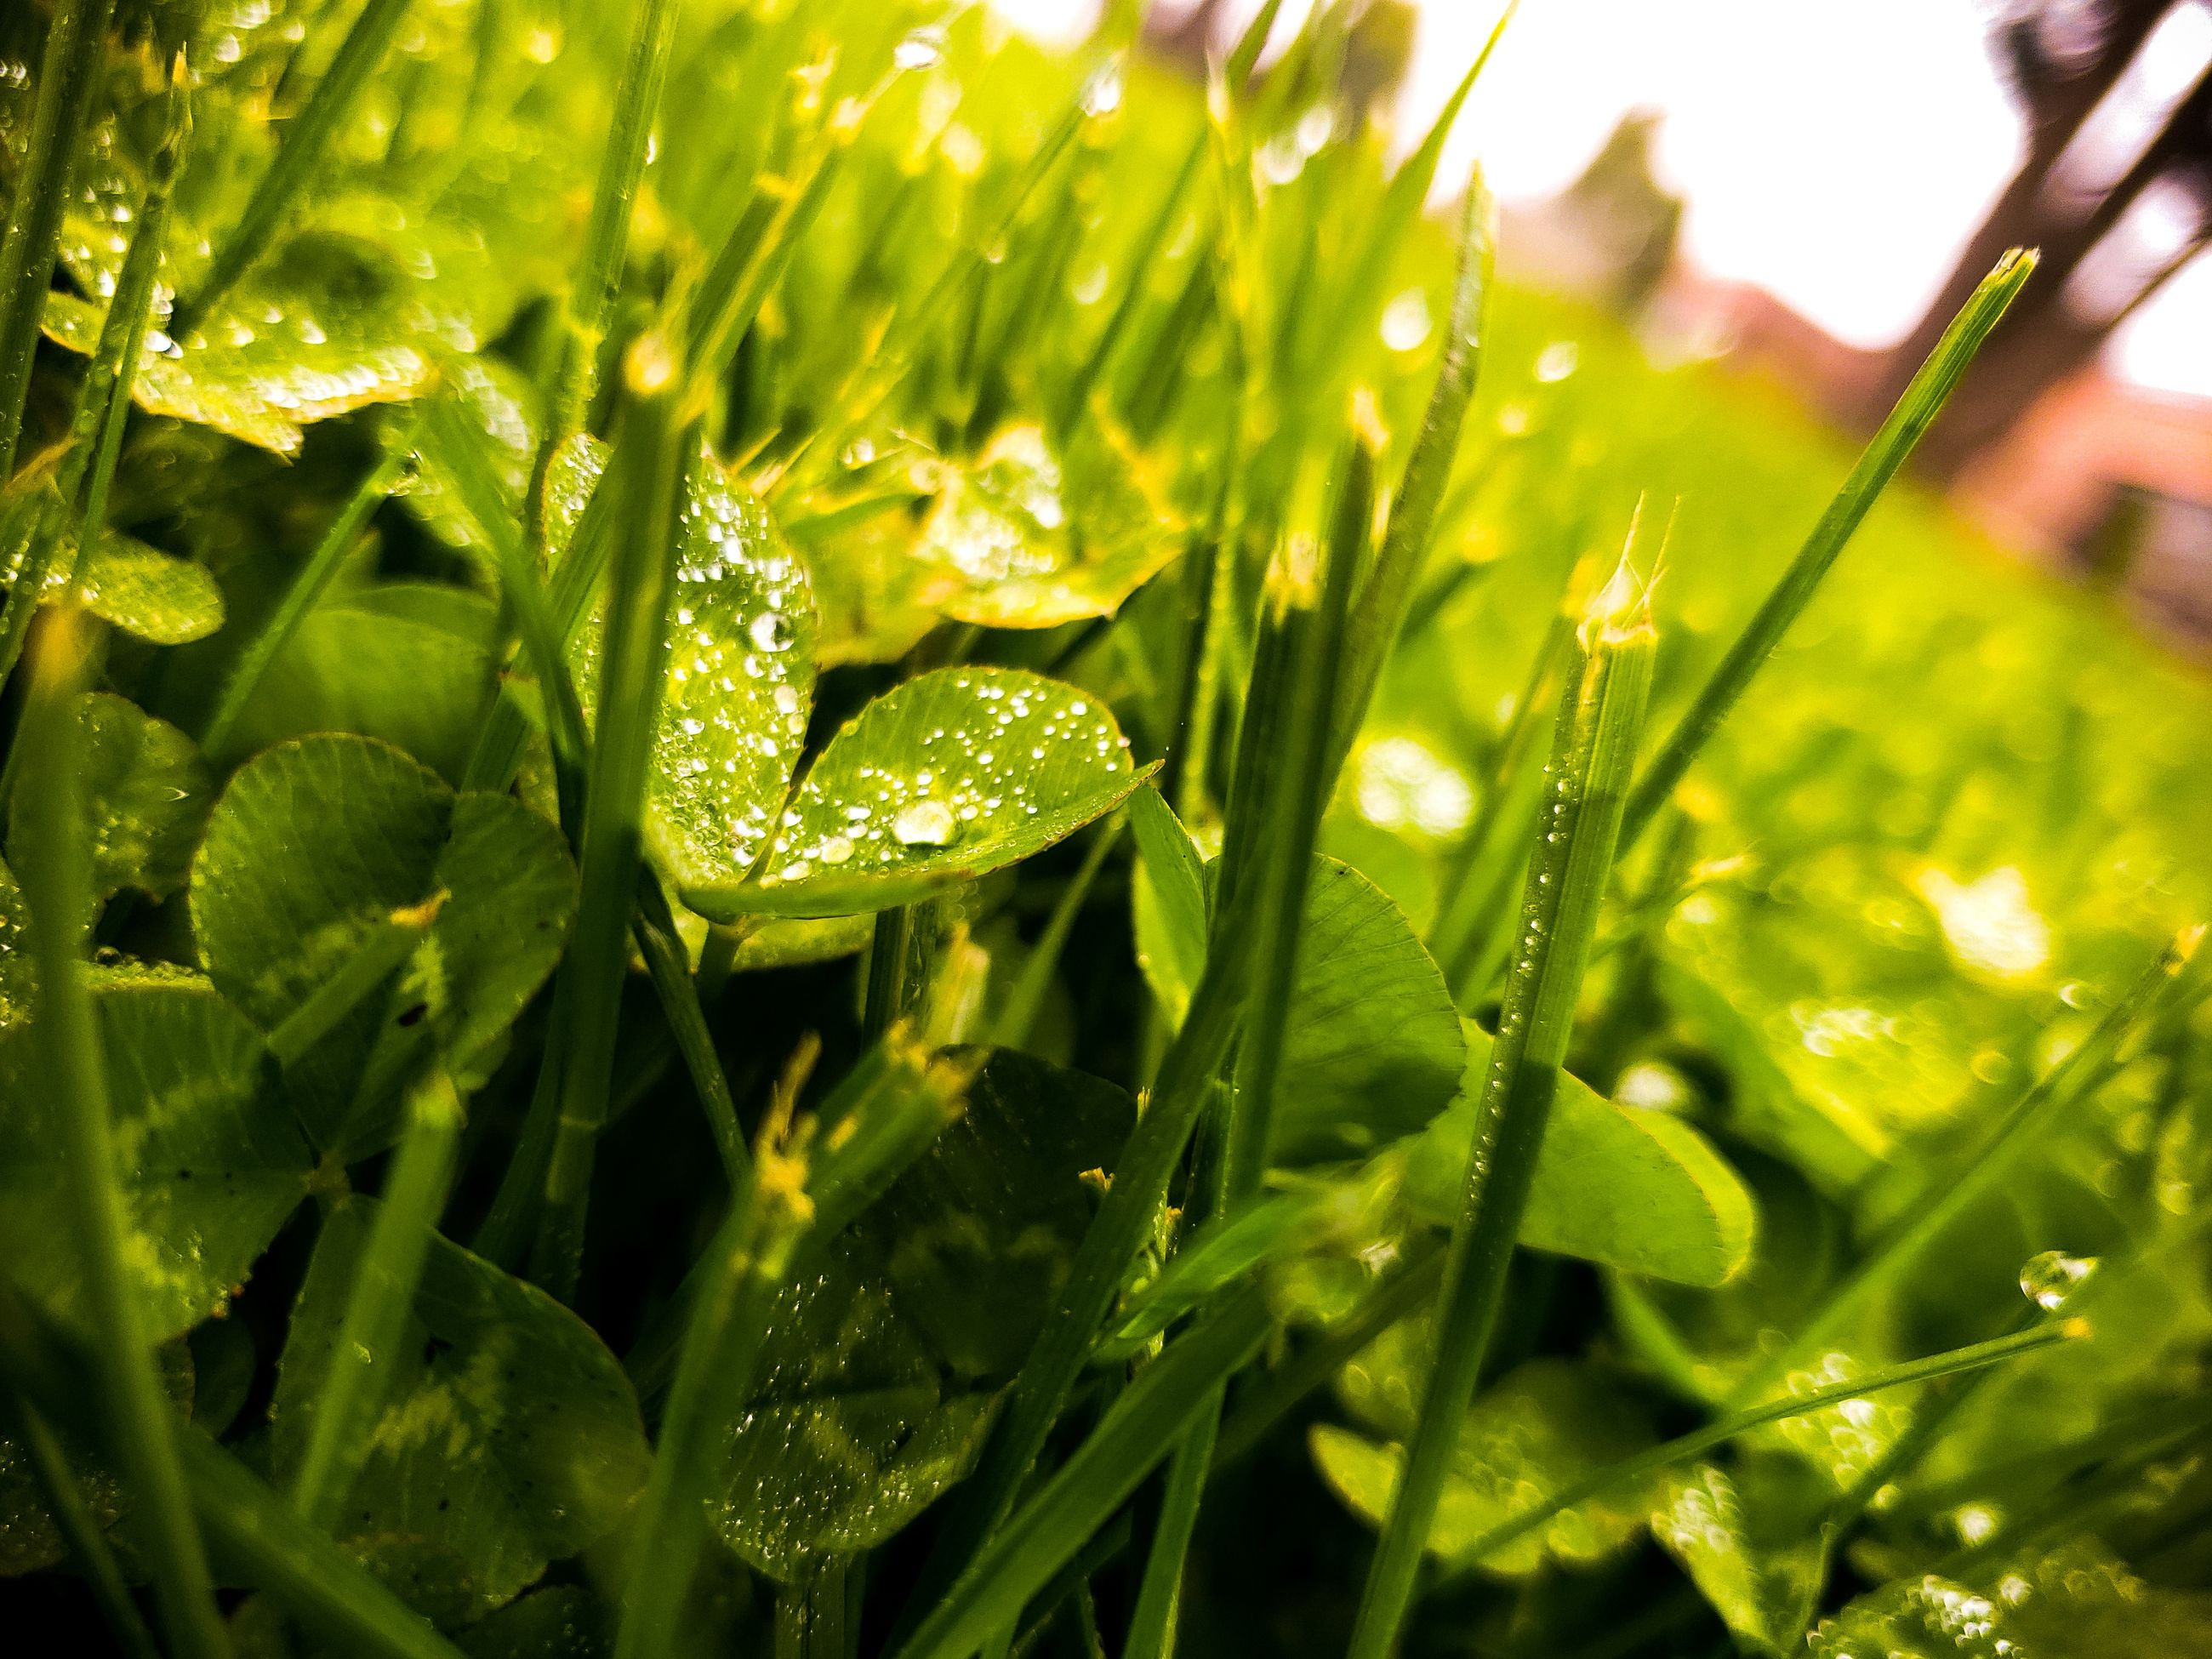 green color, plant, growth, drop, wet, leaf, water, nature, plant part, close-up, selective focus, no people, beauty in nature, day, freshness, sunlight, outdoors, tranquility, dew, rain, raindrop, blade of grass, leaves, purity, rainy season